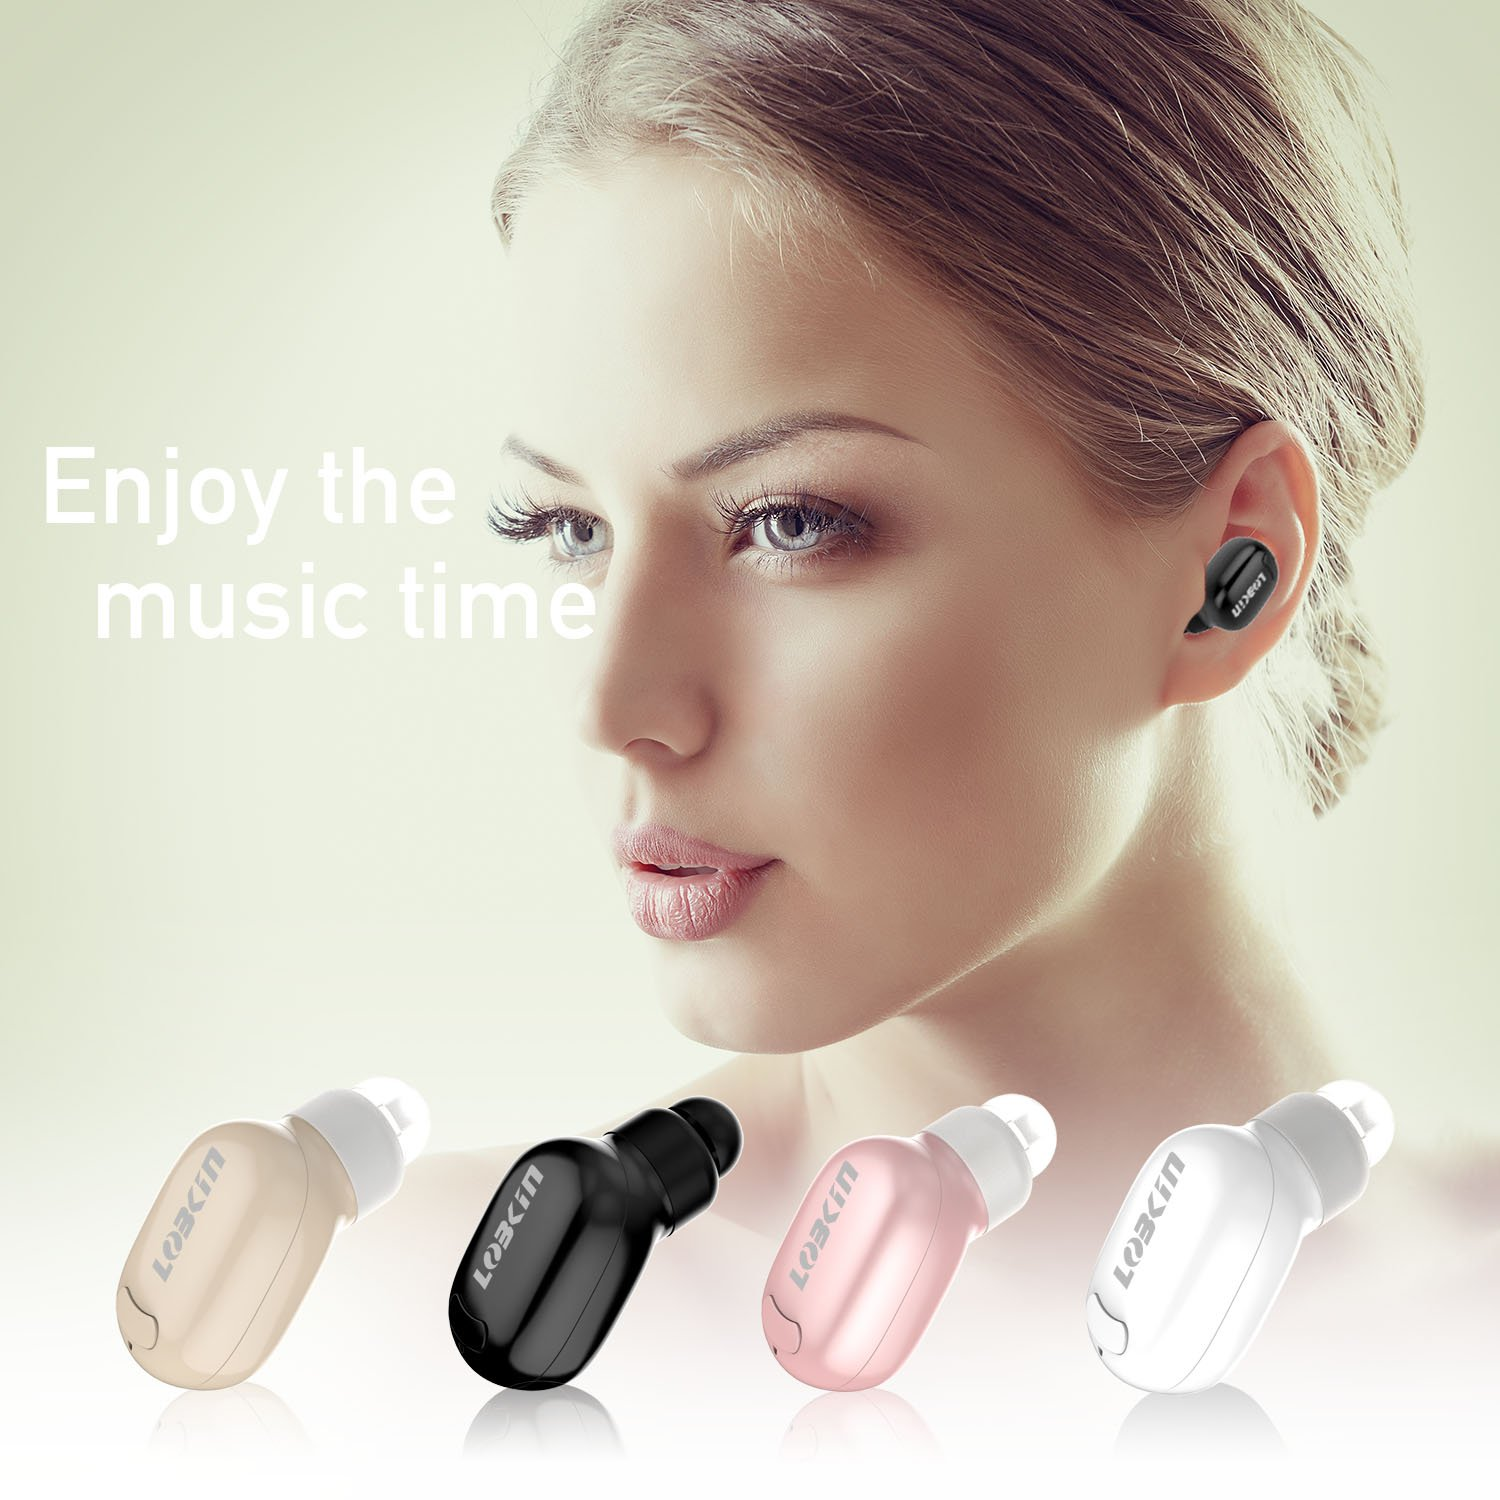 Bluetooth Headphones, Lobkin Smallest Wireless Headsets with Mic,6 Hour Playtime for Running - Black